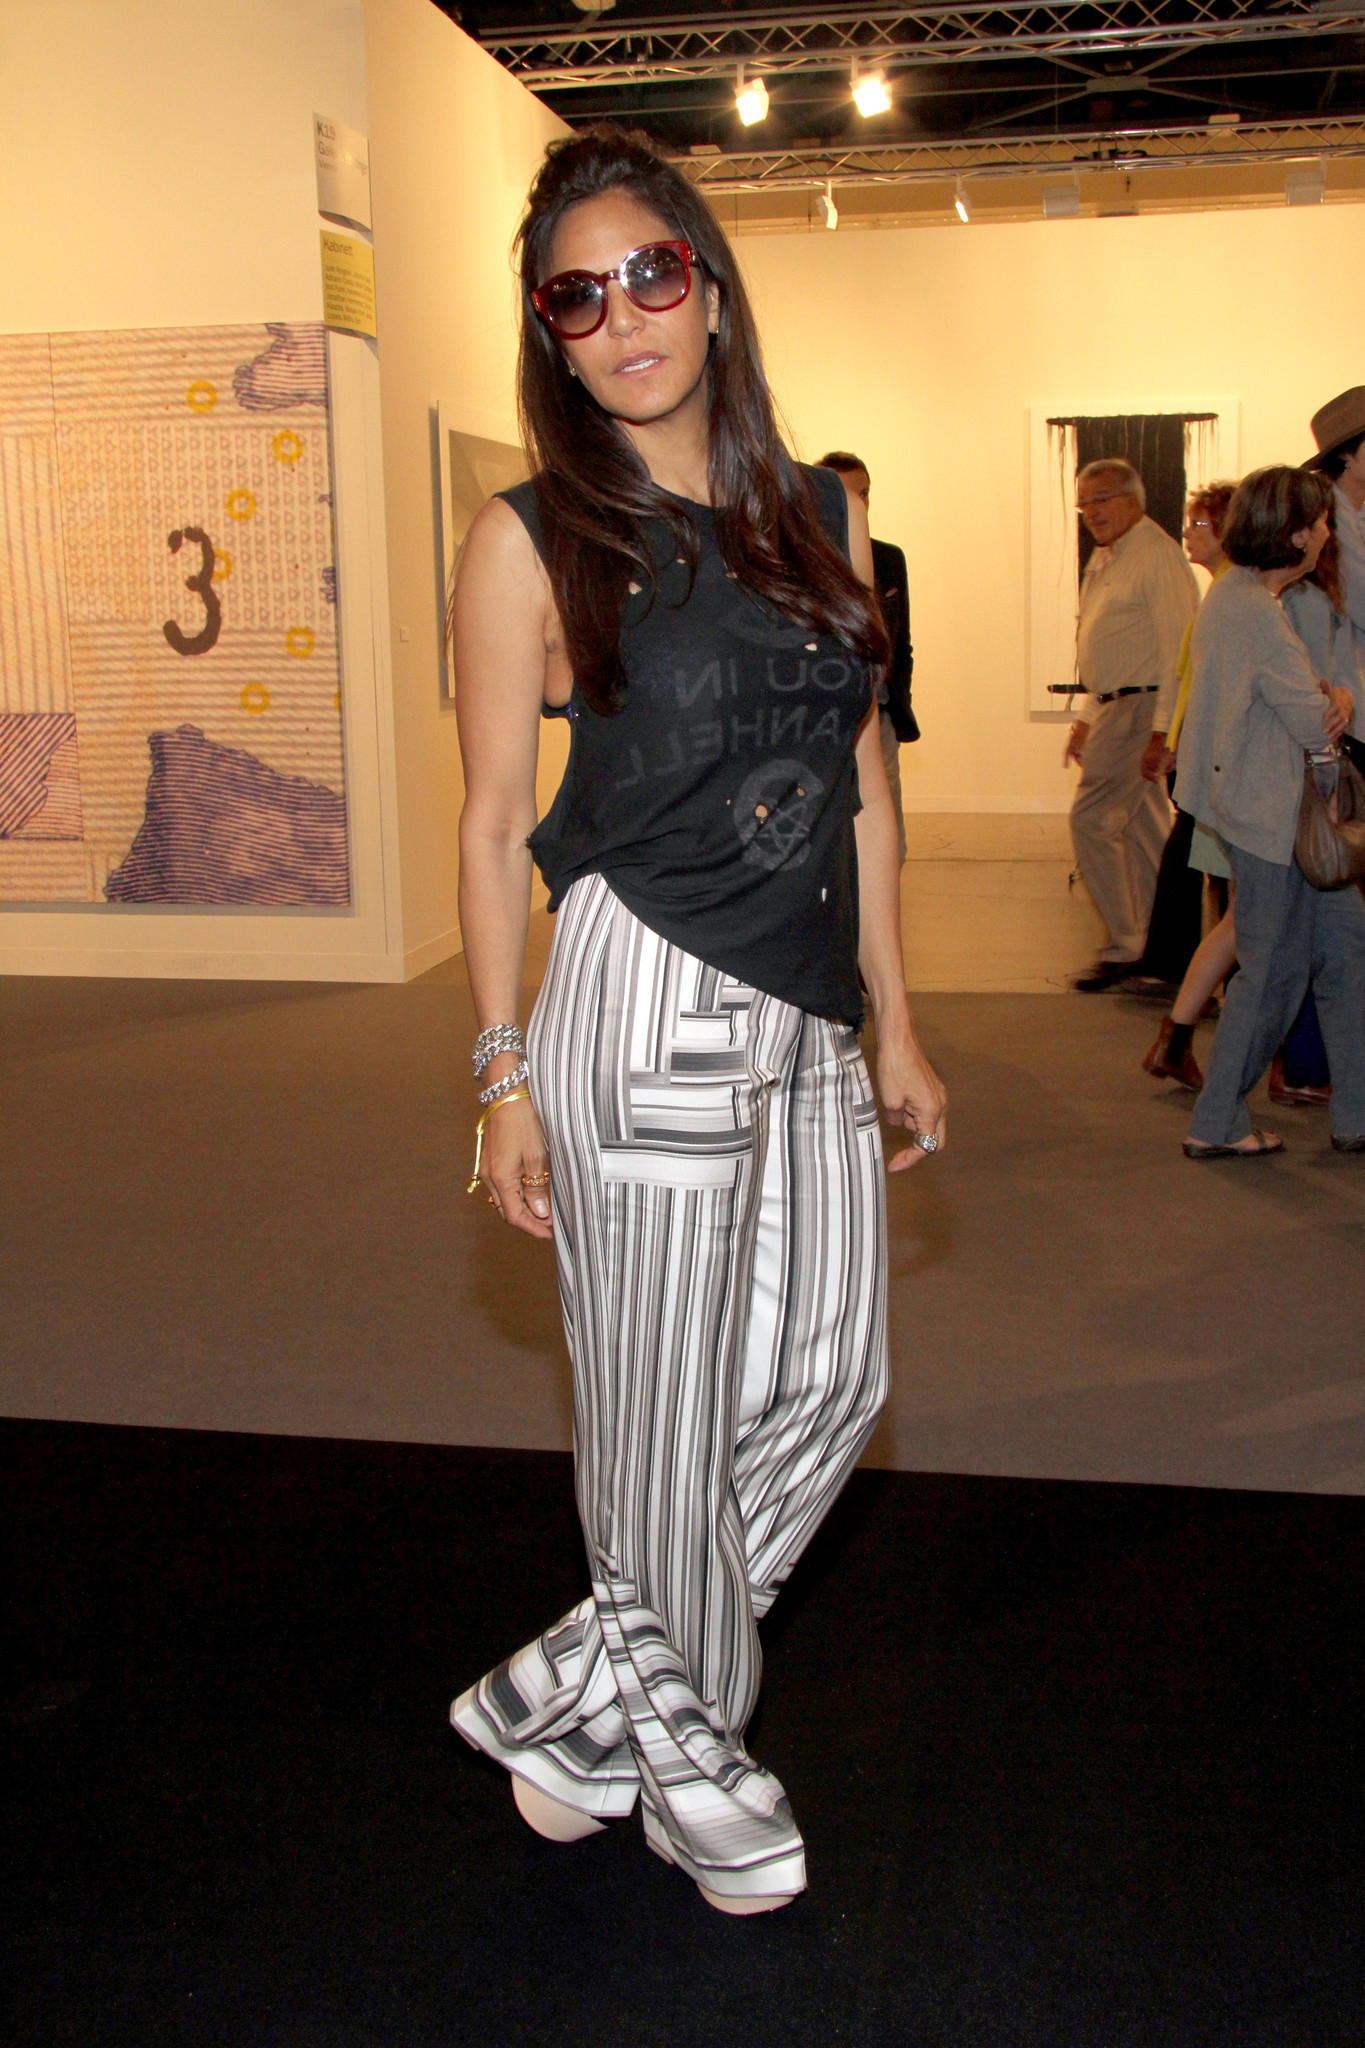 PHOTOS: The fashionistas of Art Basel - Art Basel Miami Beach 2013 - Day 2